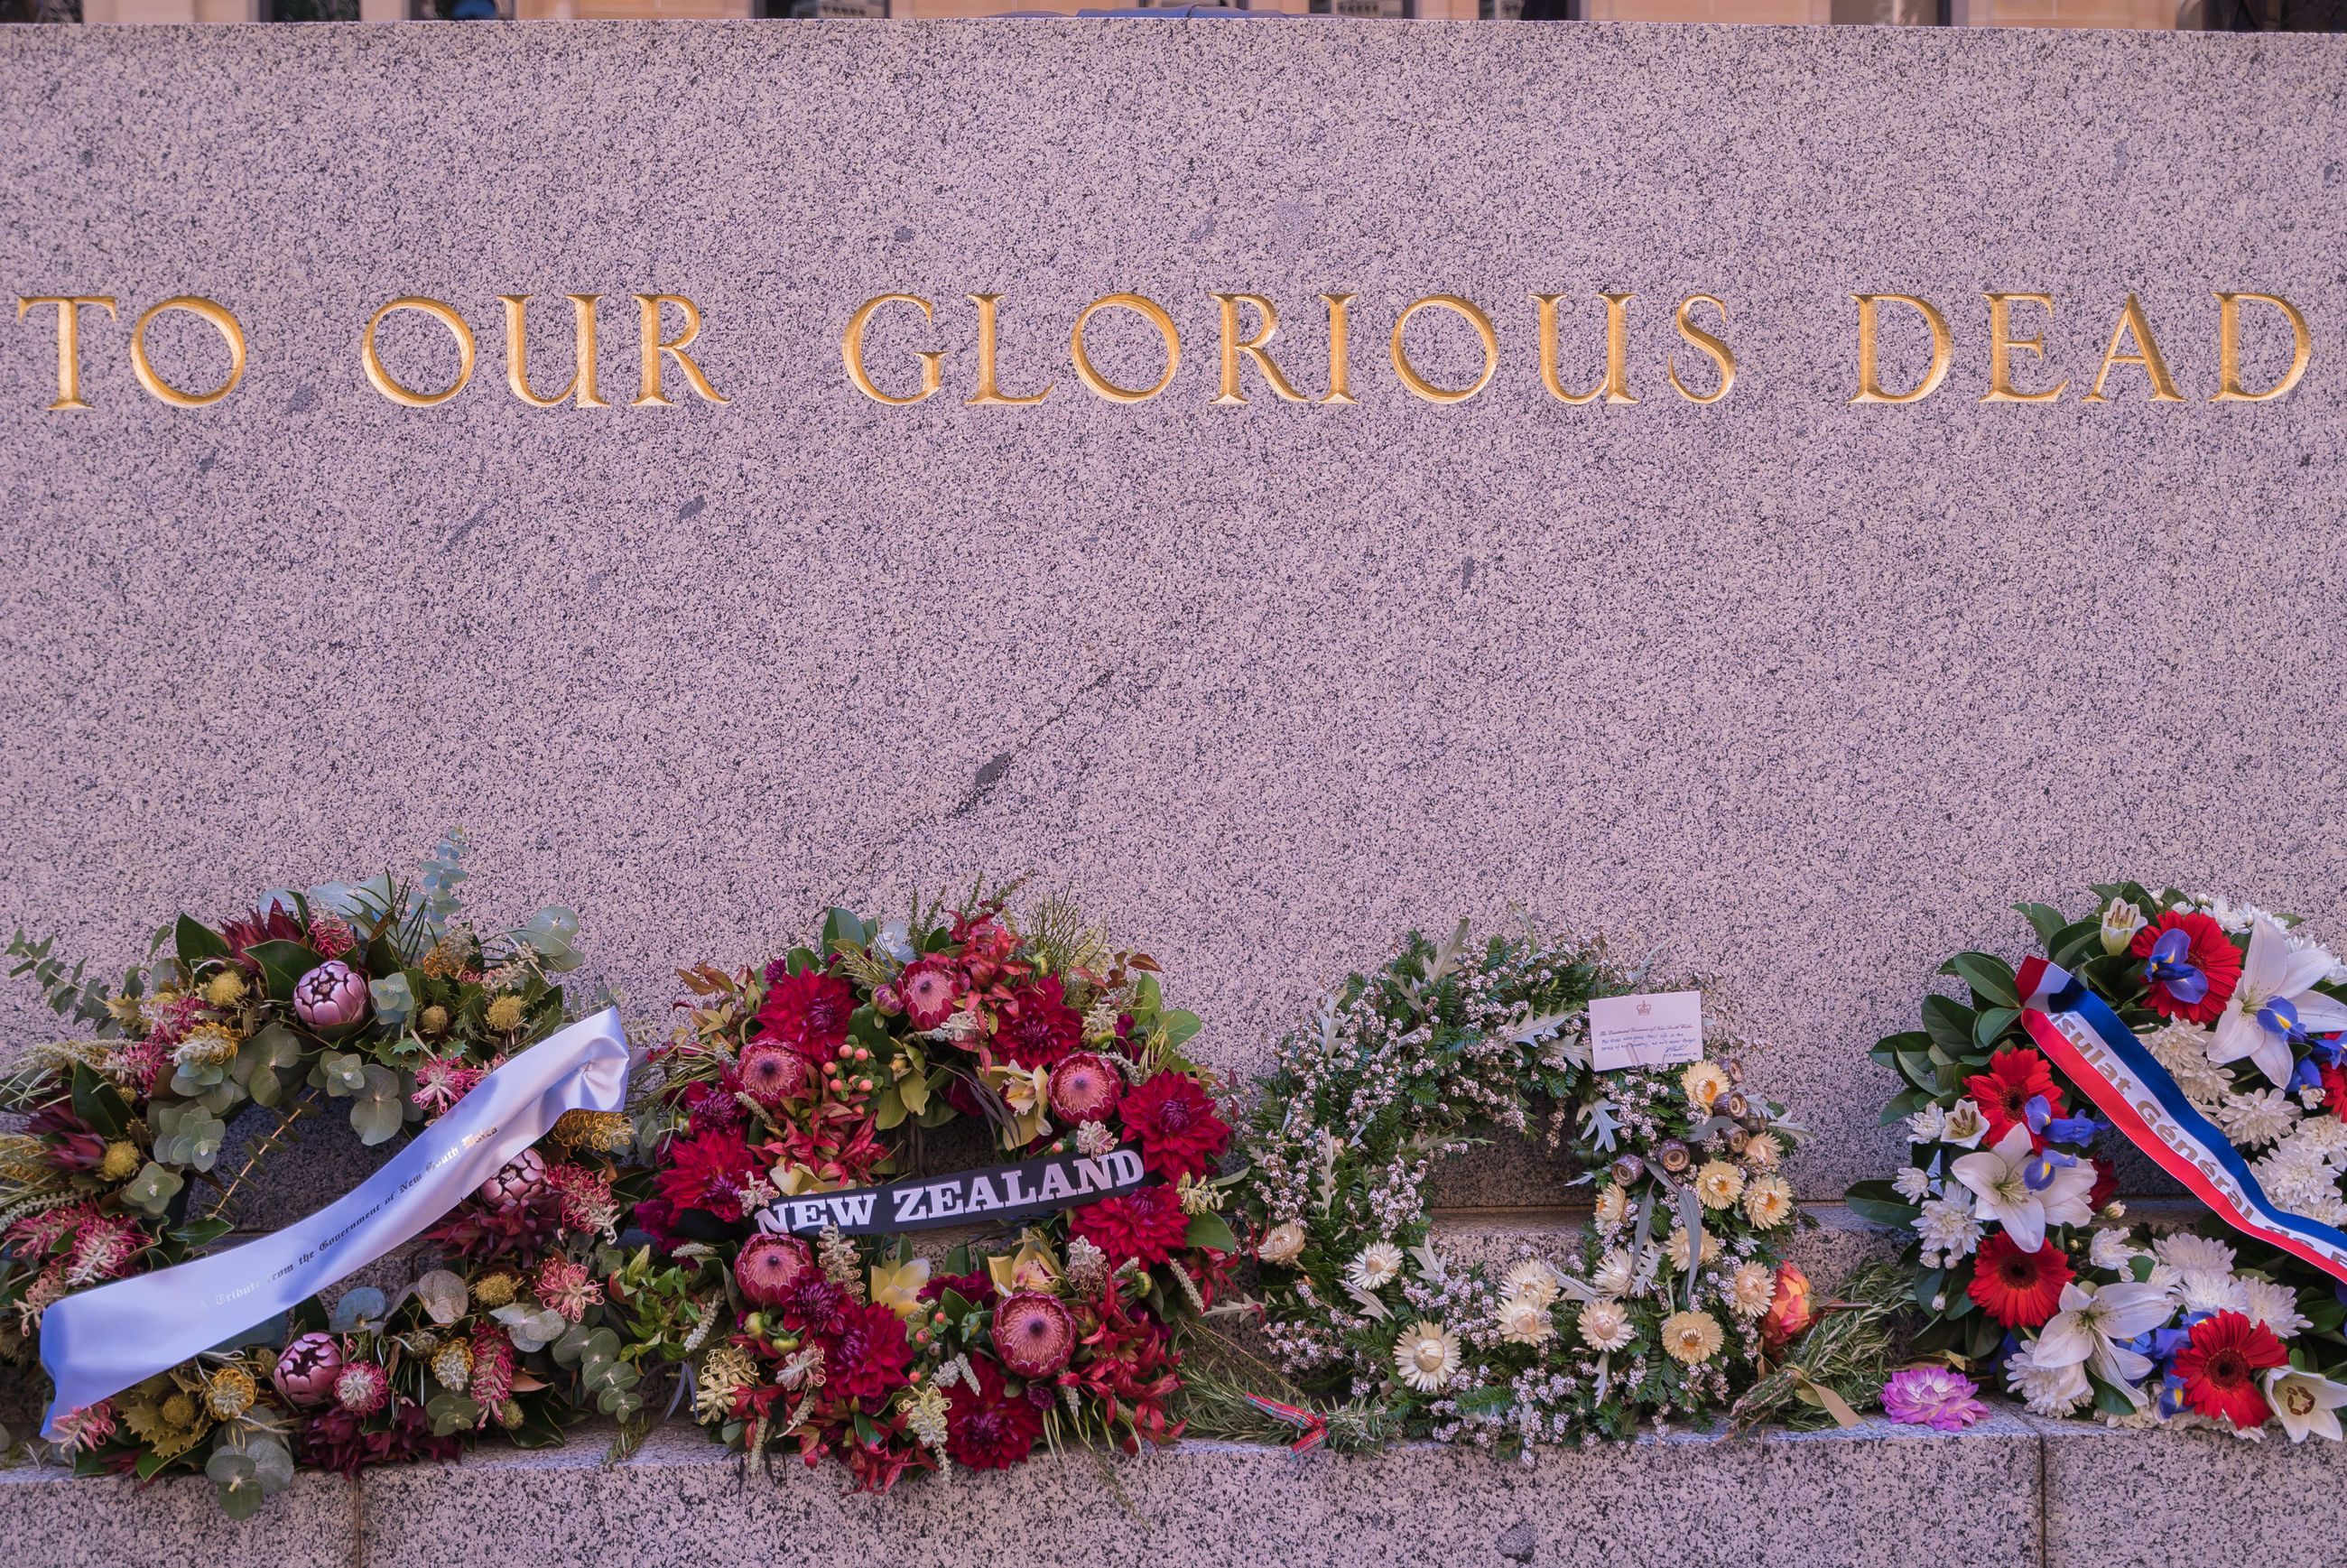 Flower wreaths on tombstone with text